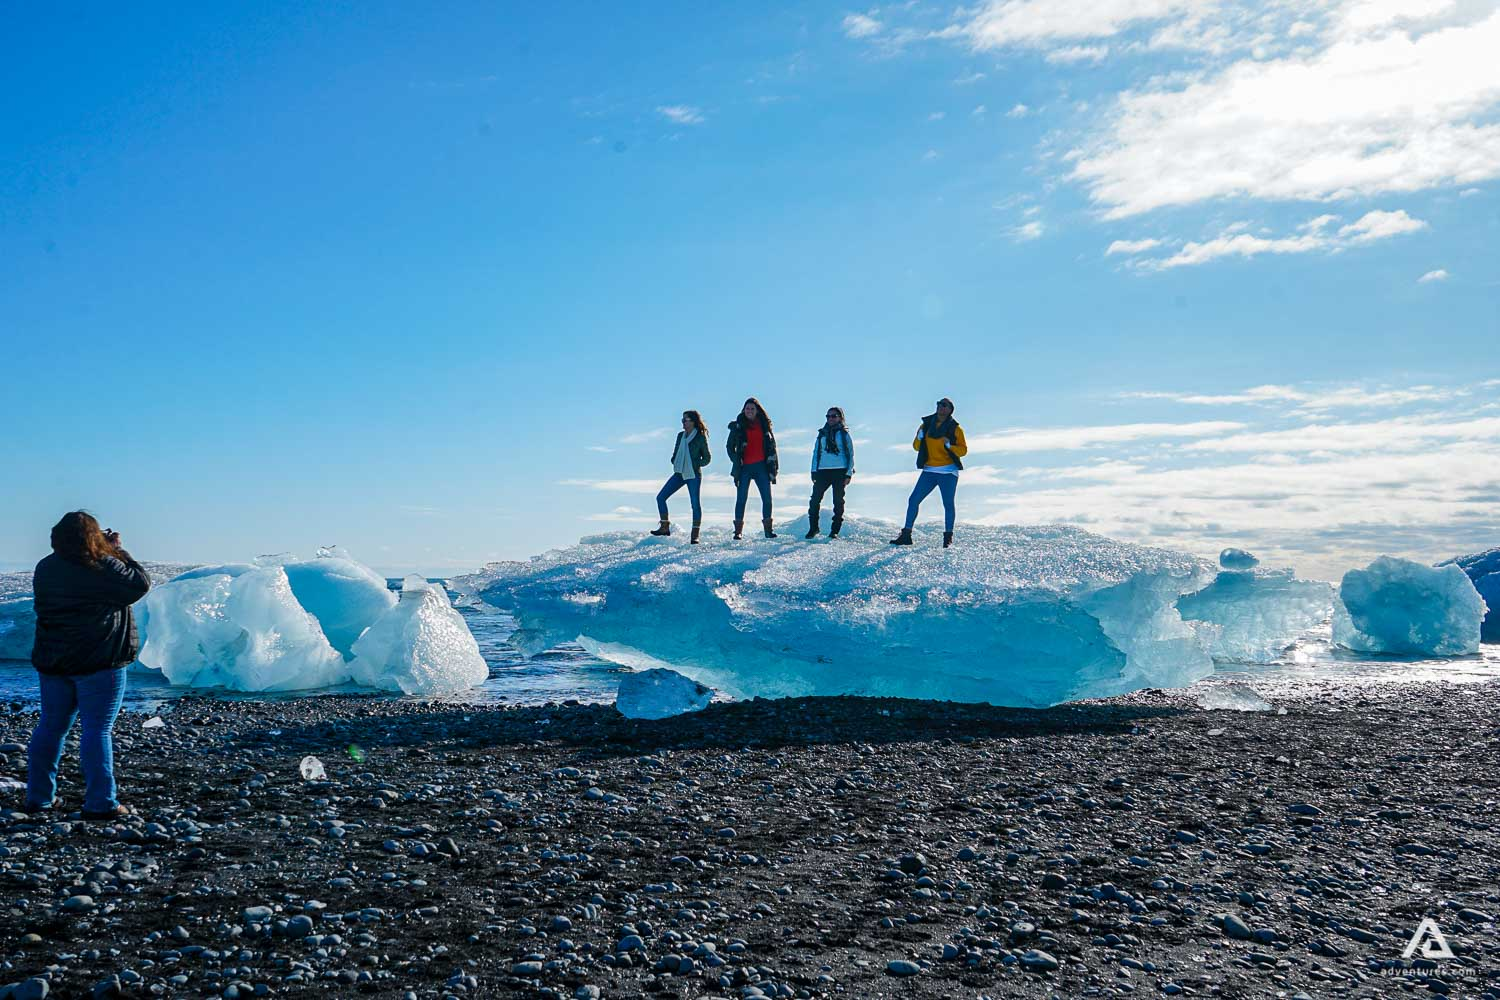 Huge icebergs at the Diamond Beach, 1 kilometre from Jökulsárlón glacier lagoon